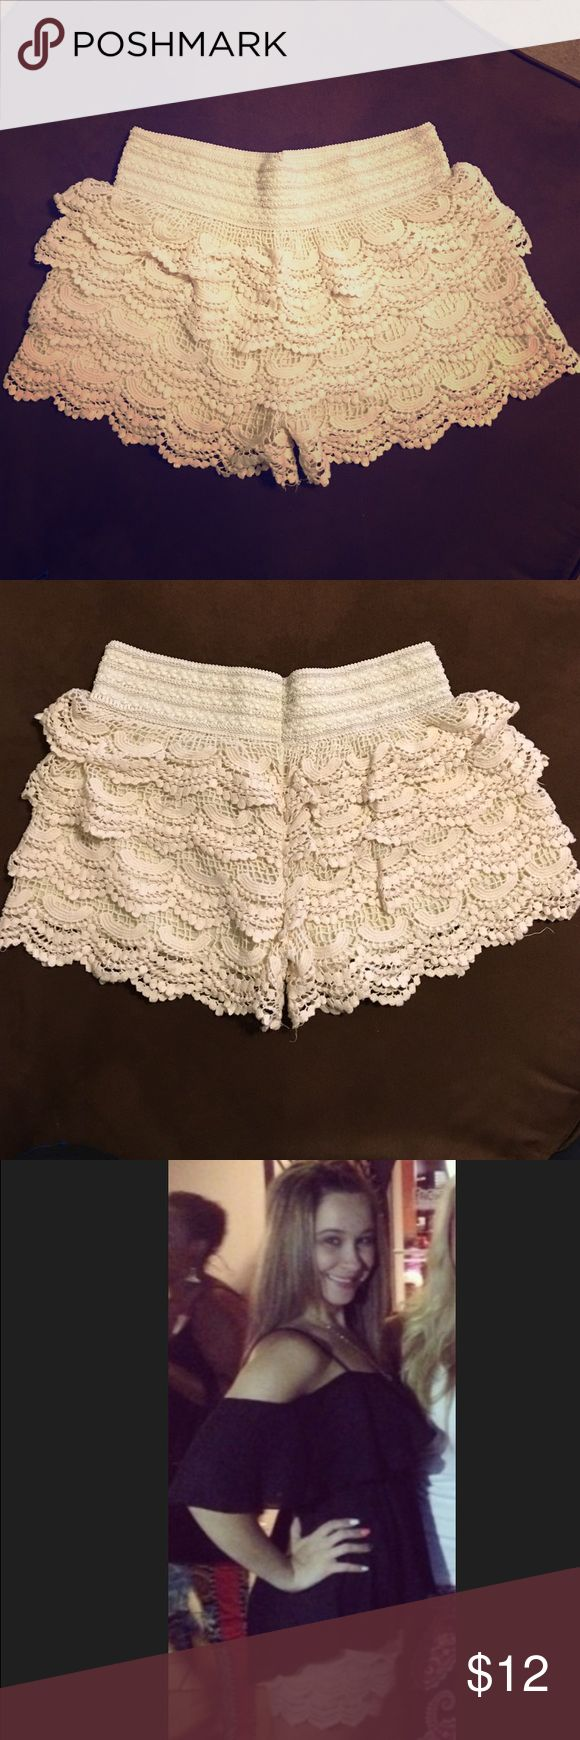 ❣Cream Crochet Lace Tiered Shorts - Medium Size medium. Worn a few short times. NO stains. Minimal wear. Measurements are in pics above. Comment any additional questions. Pair with a cute blouse! Bundle 2+ to save ‼️ Shorts